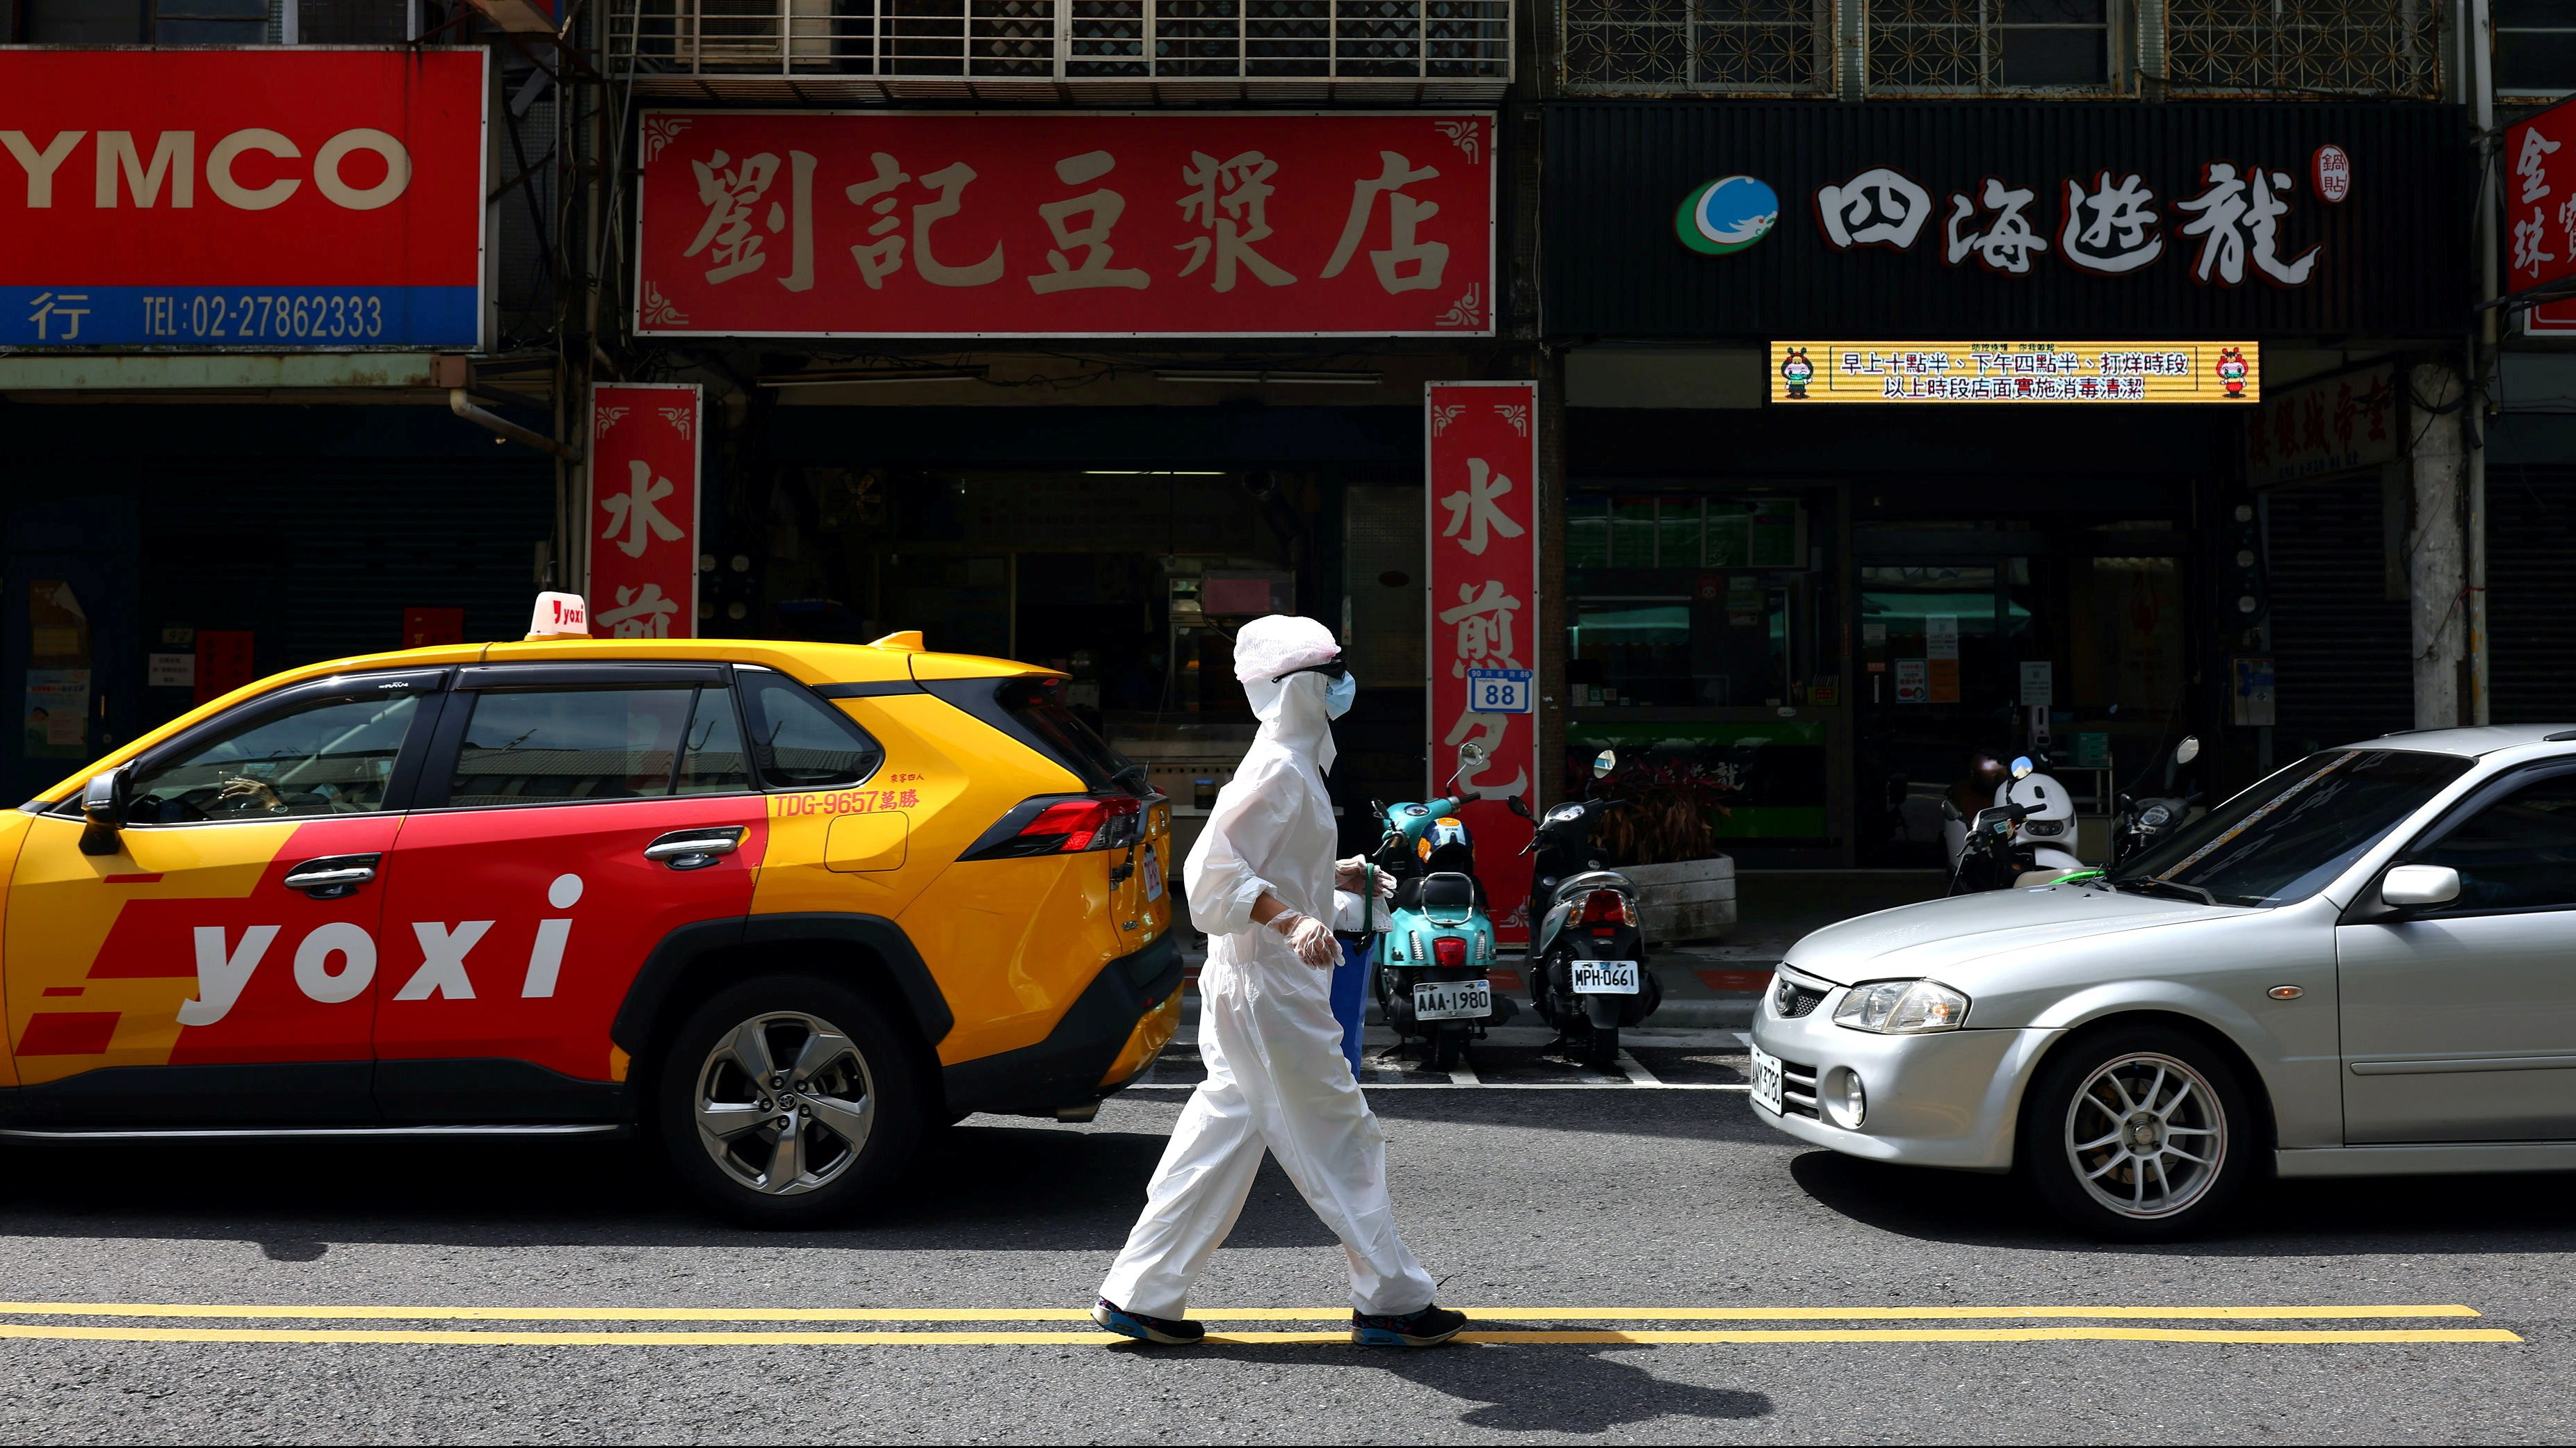 A person dressed in protective suit walks down a street following the recent surge of coronavirus disease (COVID-19) infections in Taipei, Taiwan, June 2, 2021. REUTERS/Ann Wang TPX IMAGES OF THE DAY